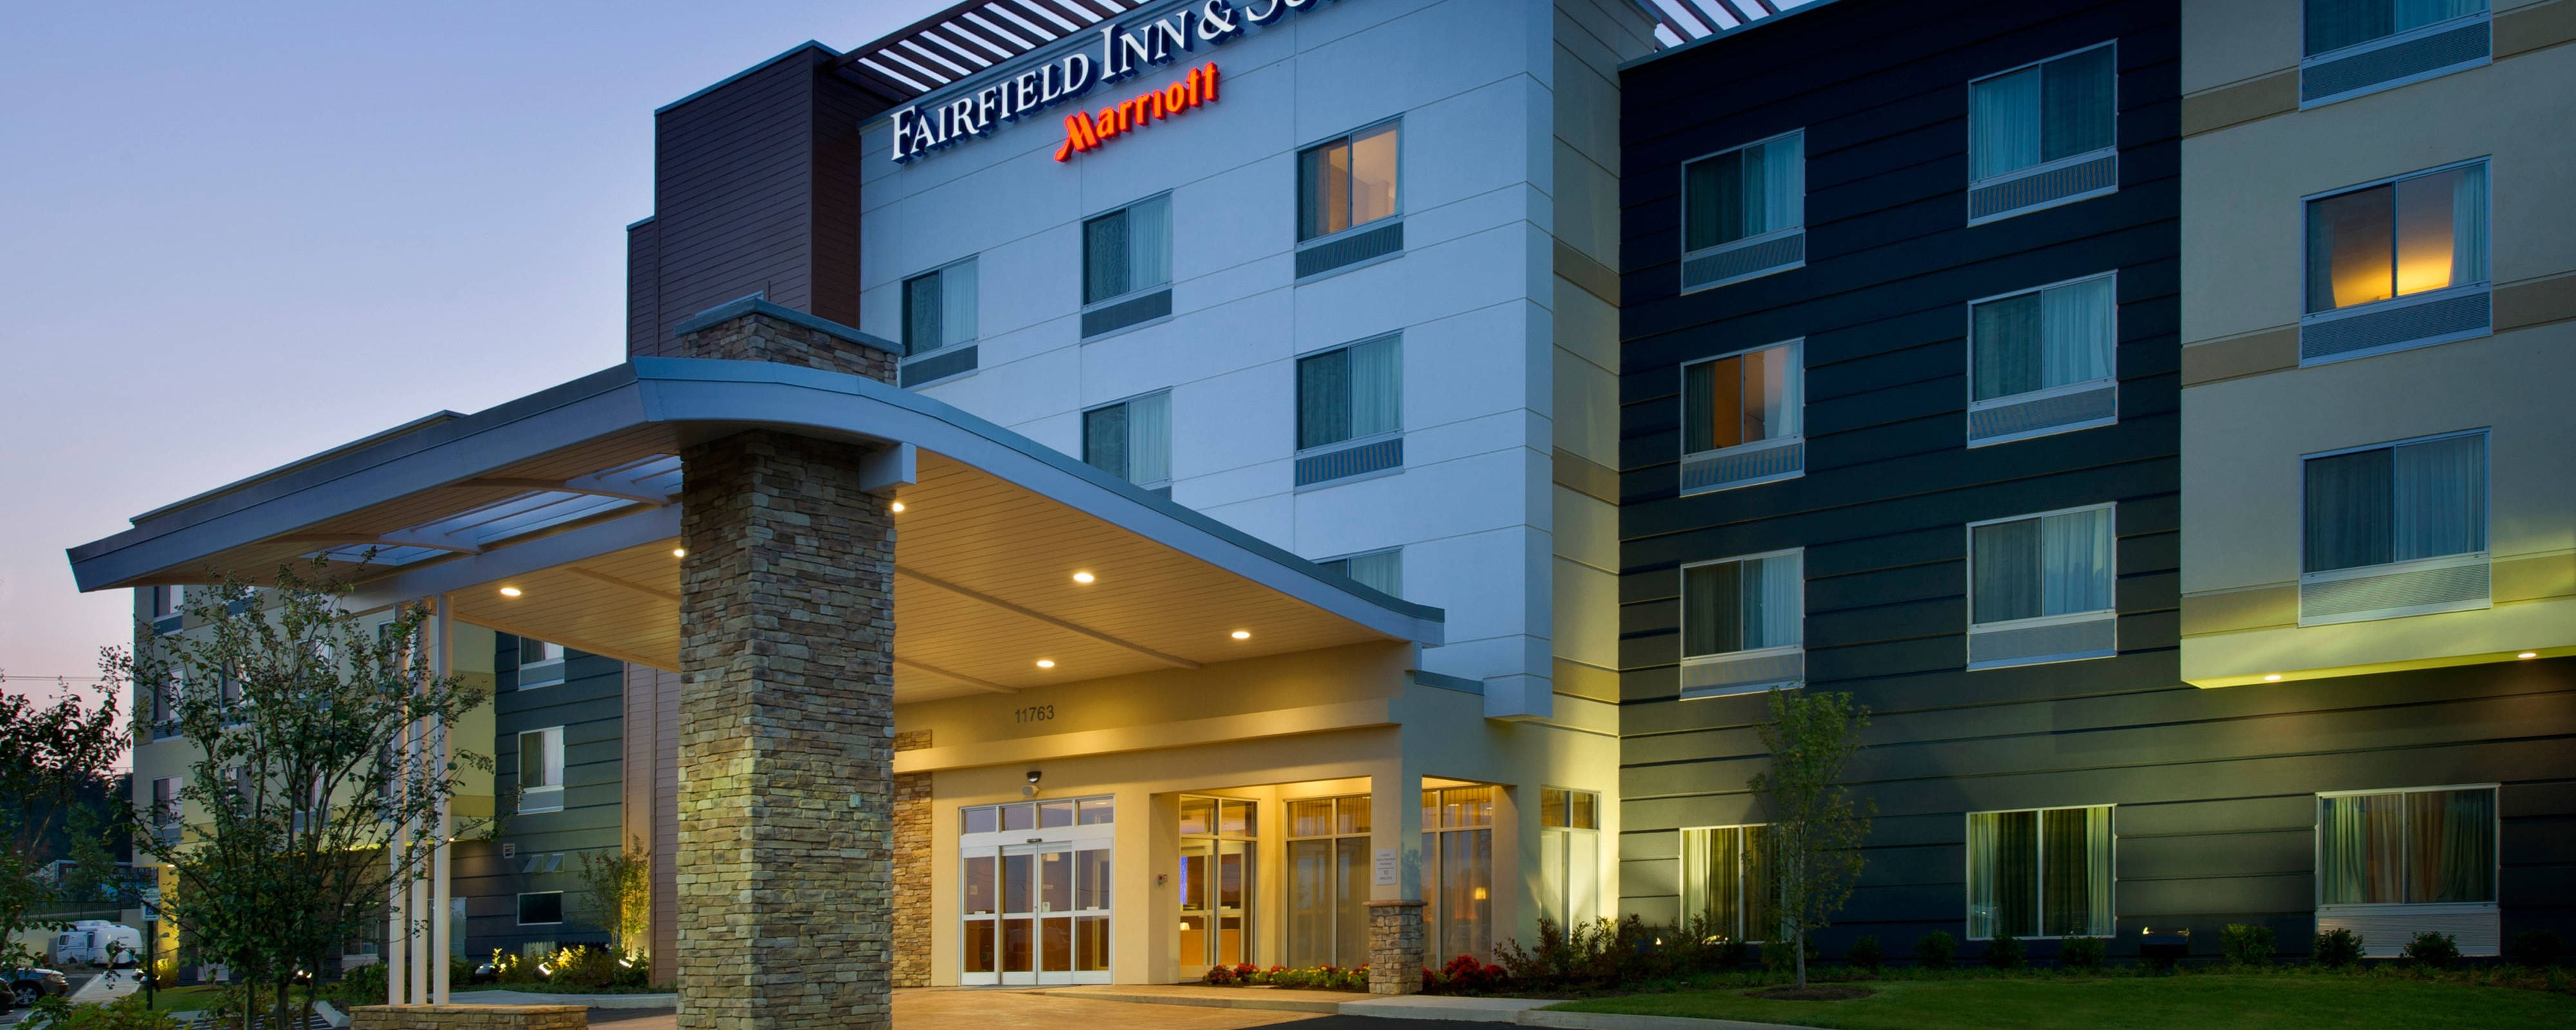 west knoxville hotels near knoxville fairfield inn. Black Bedroom Furniture Sets. Home Design Ideas